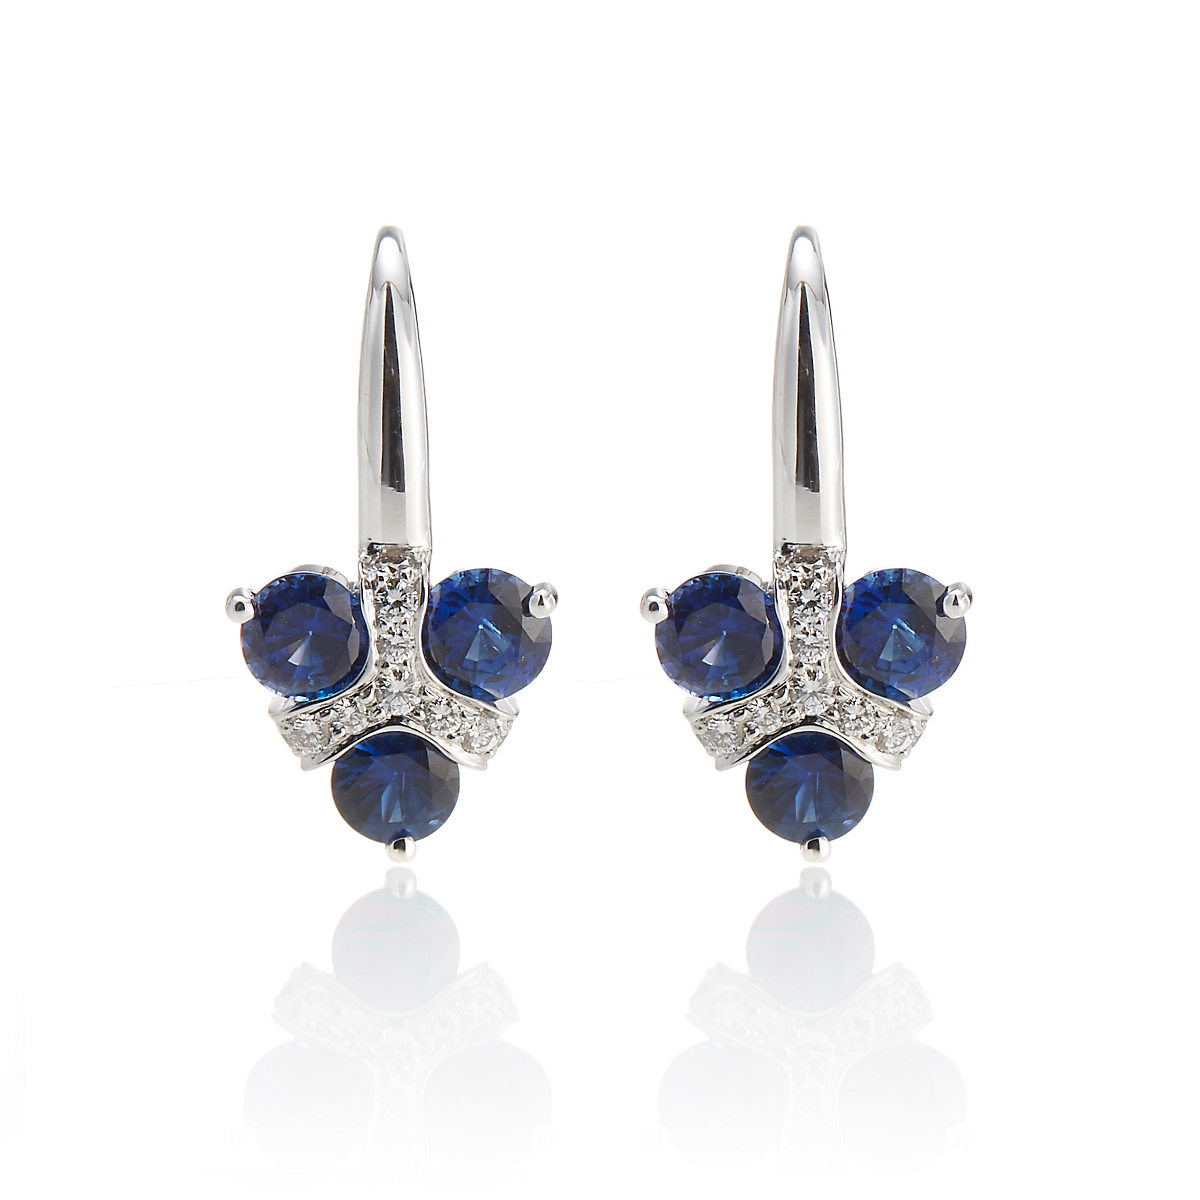 Carelle Diamond & Sapphire Carizma Trio Earrings